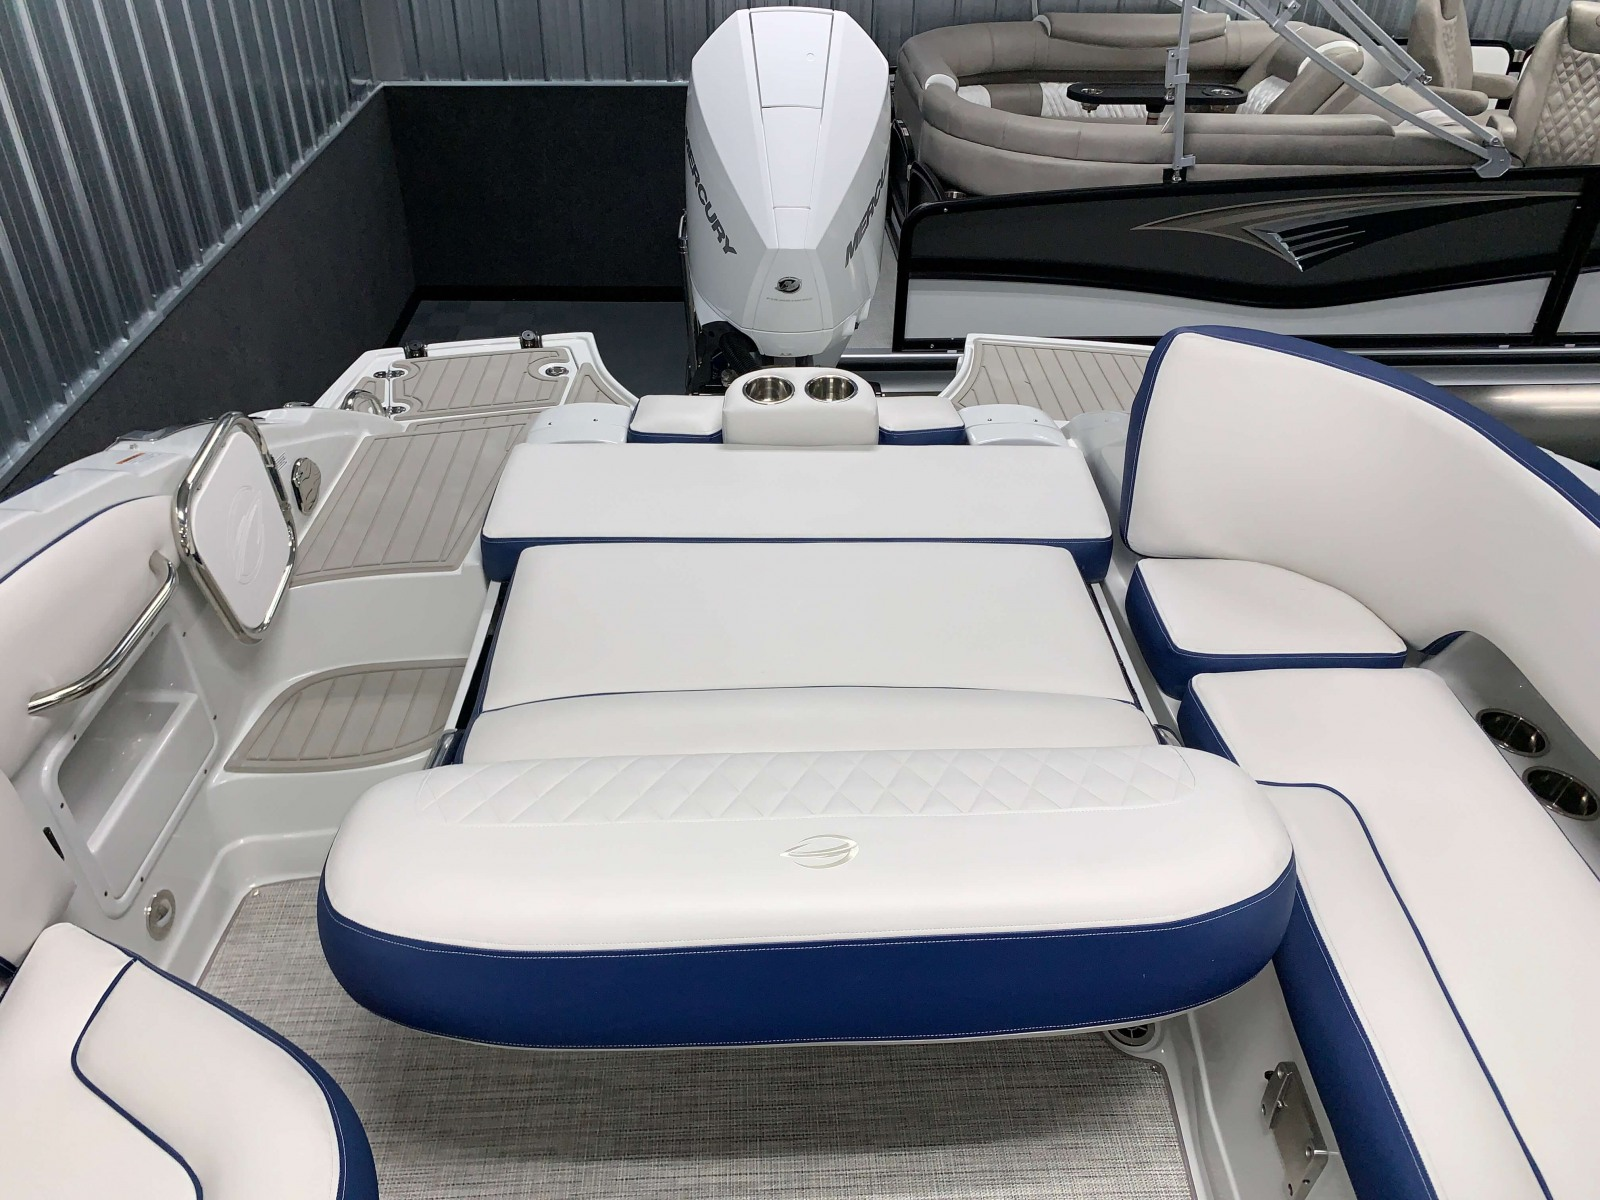 Rear Bed Lounge of the 2021 Crownline 255 XSS Bowrider Boat